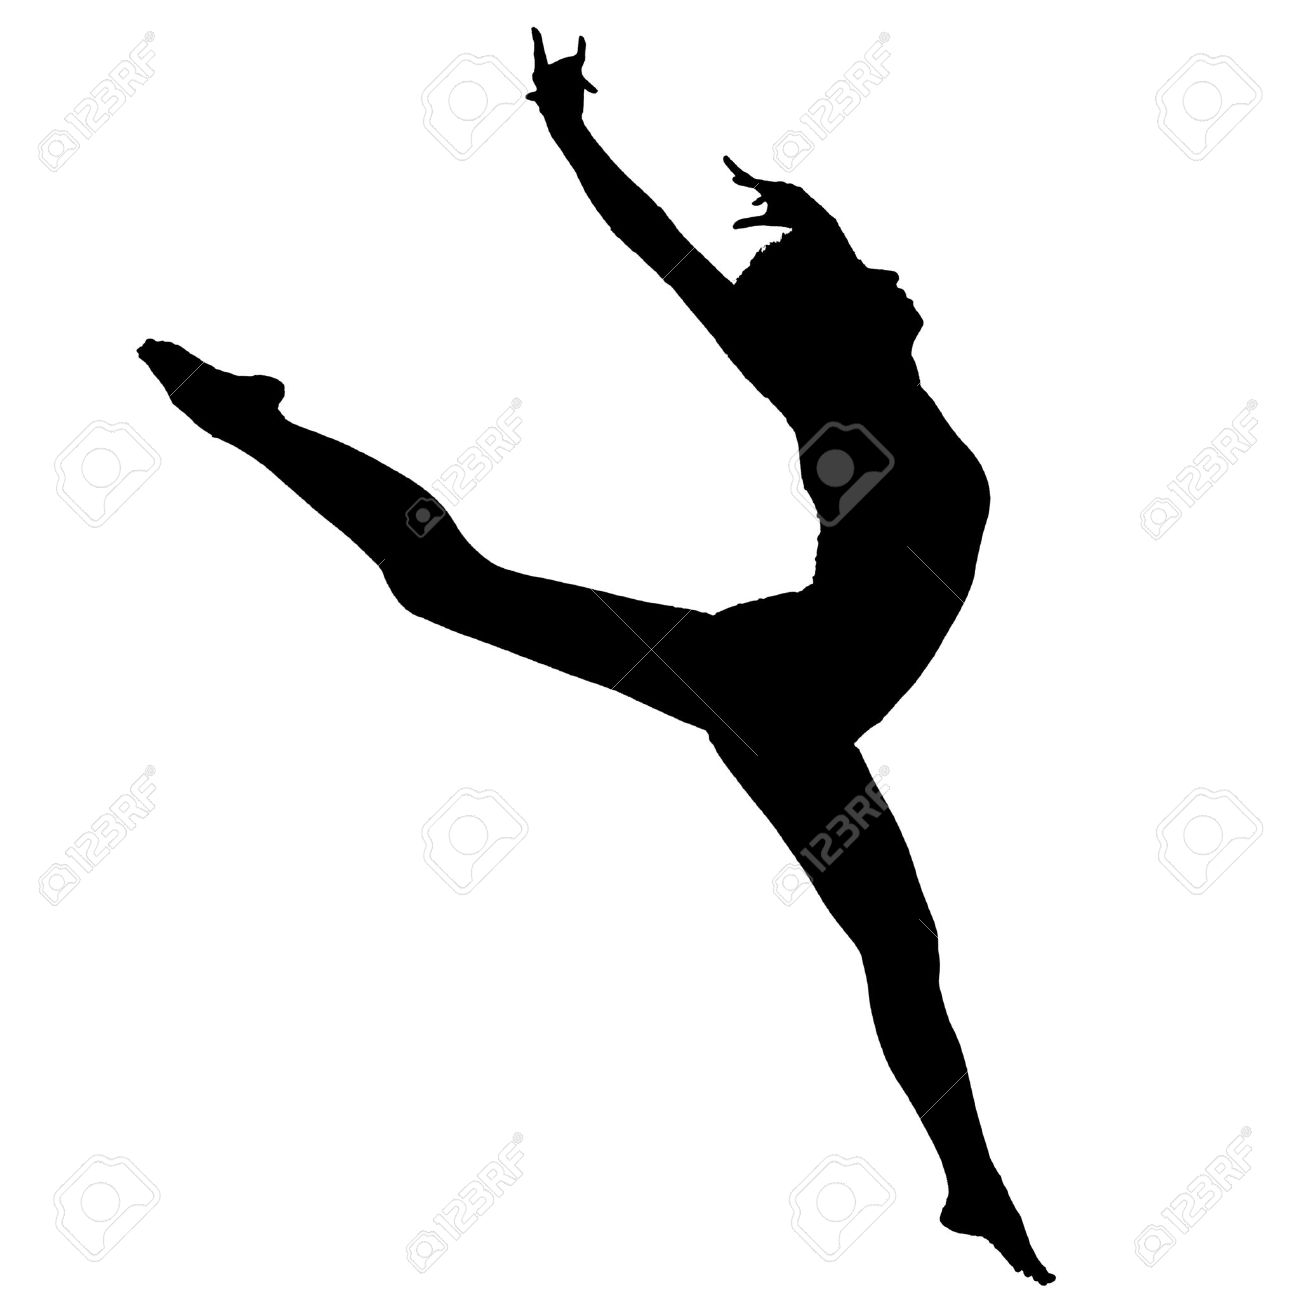 Black silhouette the ballerina on a white background Stock Photo - 11776682